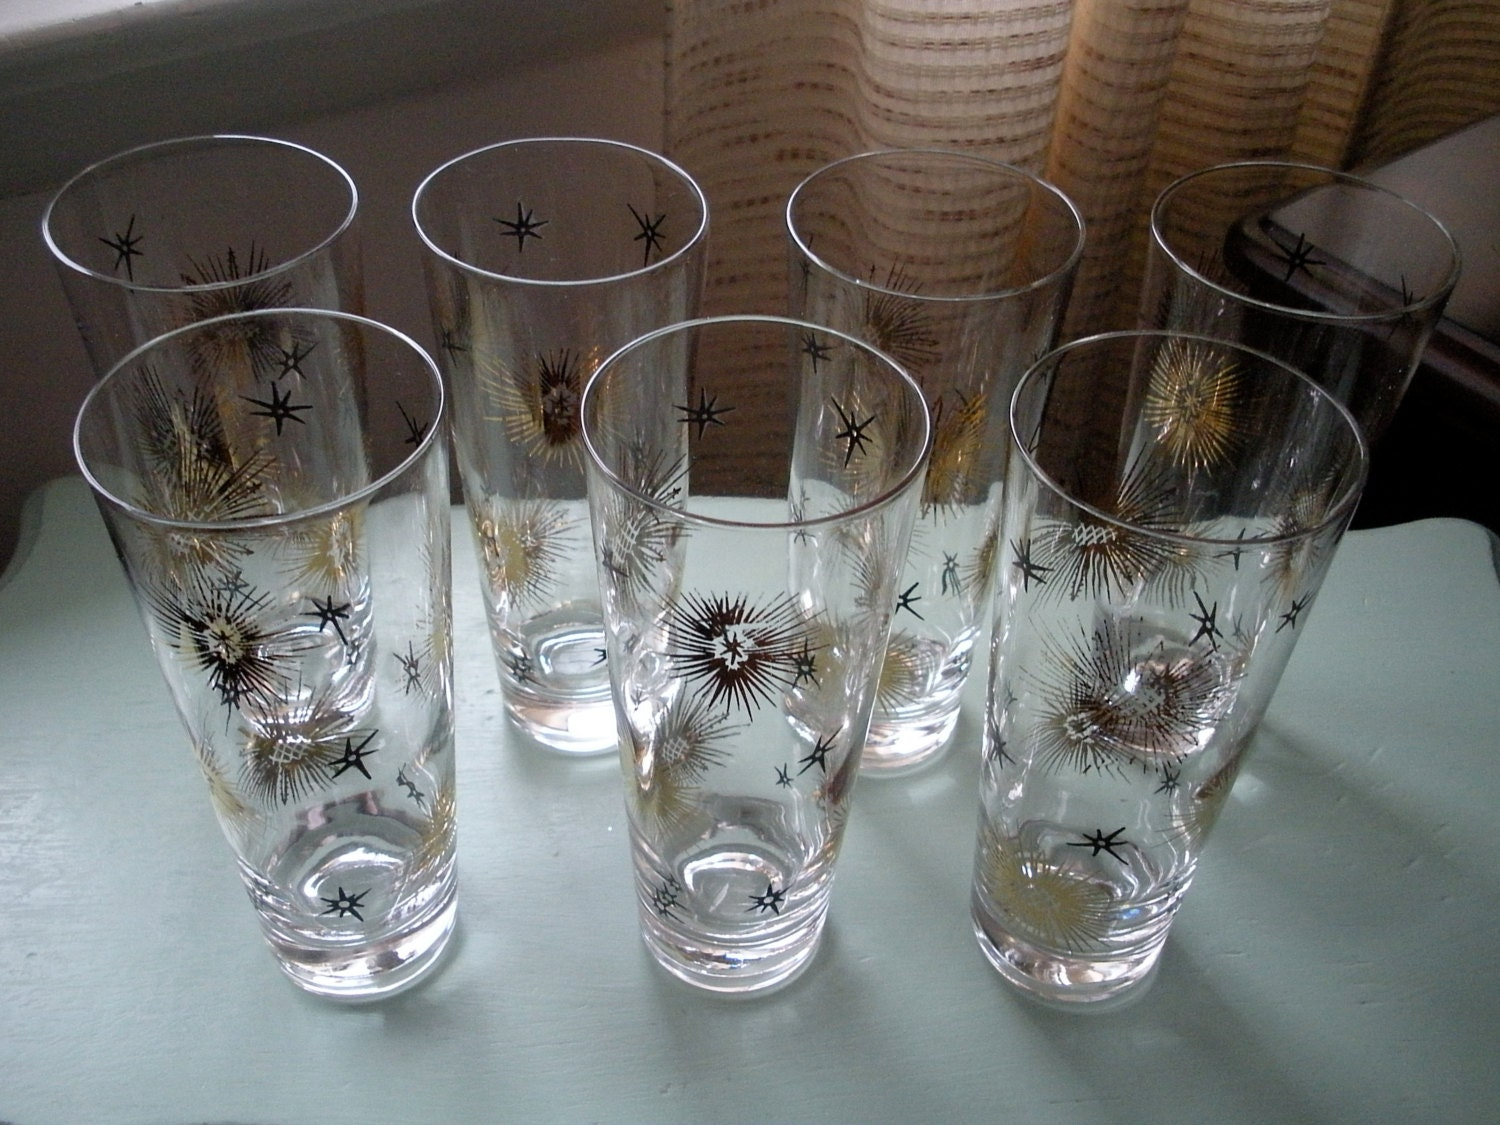 Vintage atomic starburst tumbler glasses tom collins high ball - Starburst glassware ...